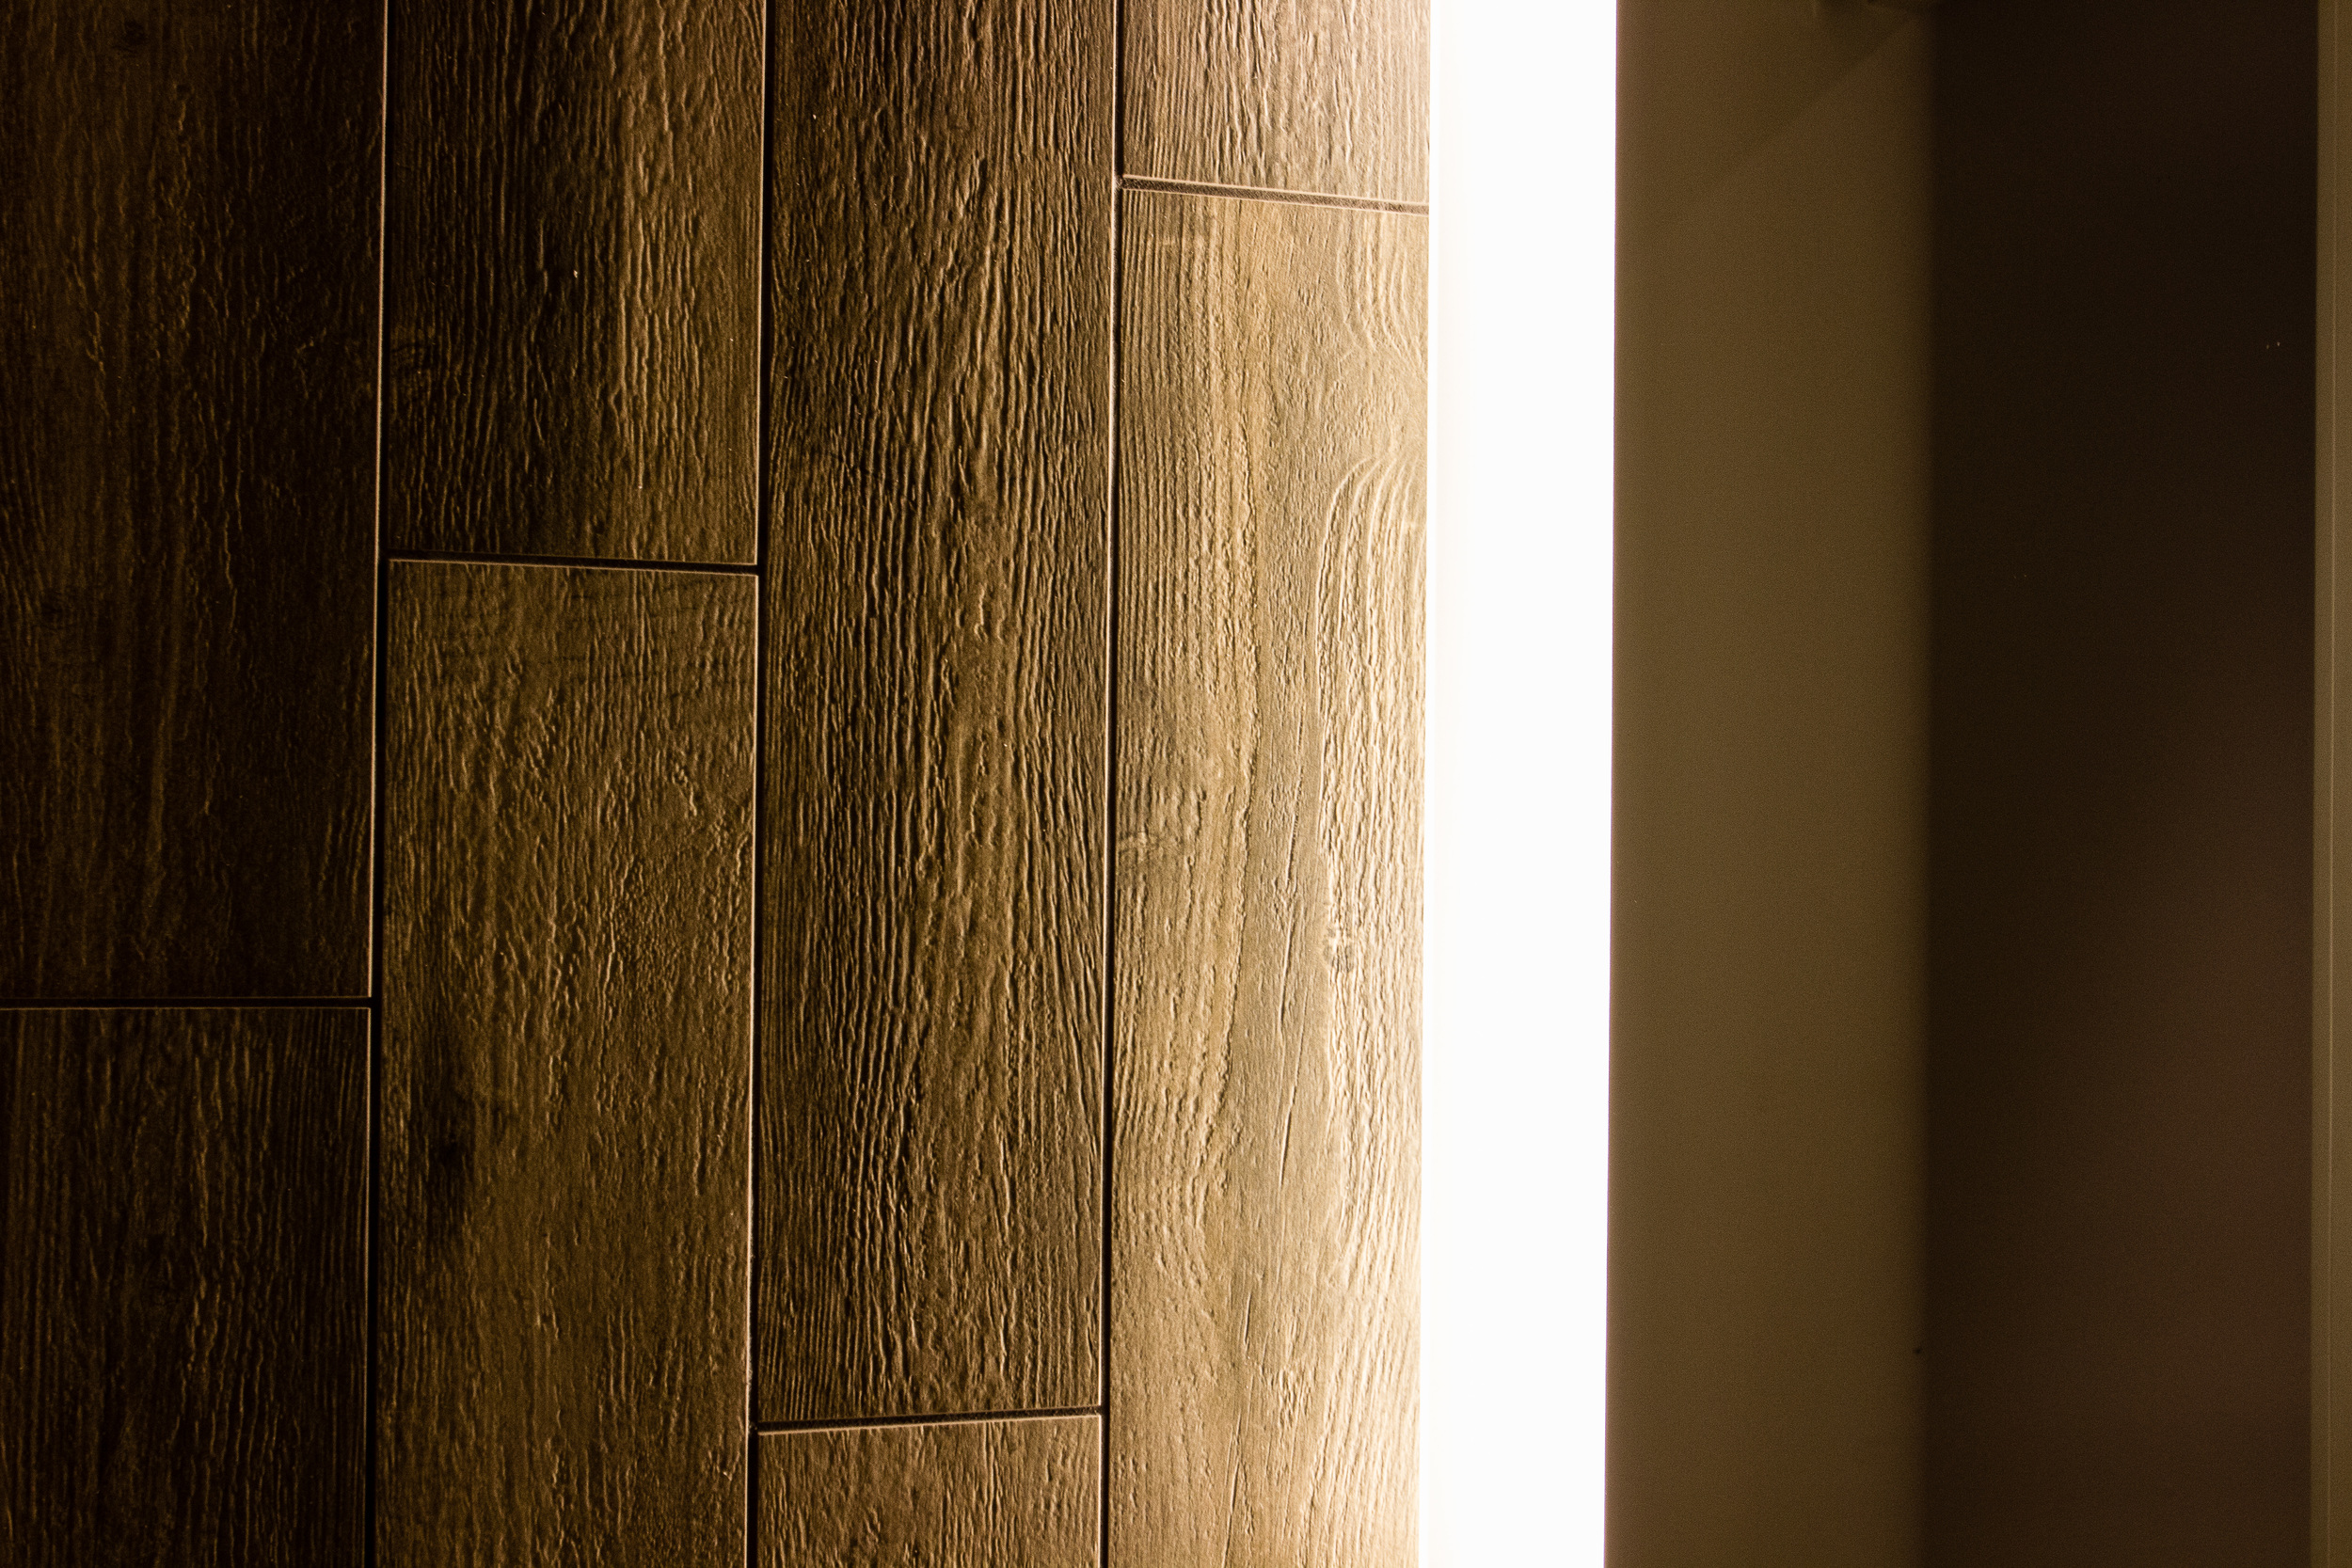 Sparano Mooney Architecture_Park City Utah Ski Lodge_Floor Reflected Light.jpg